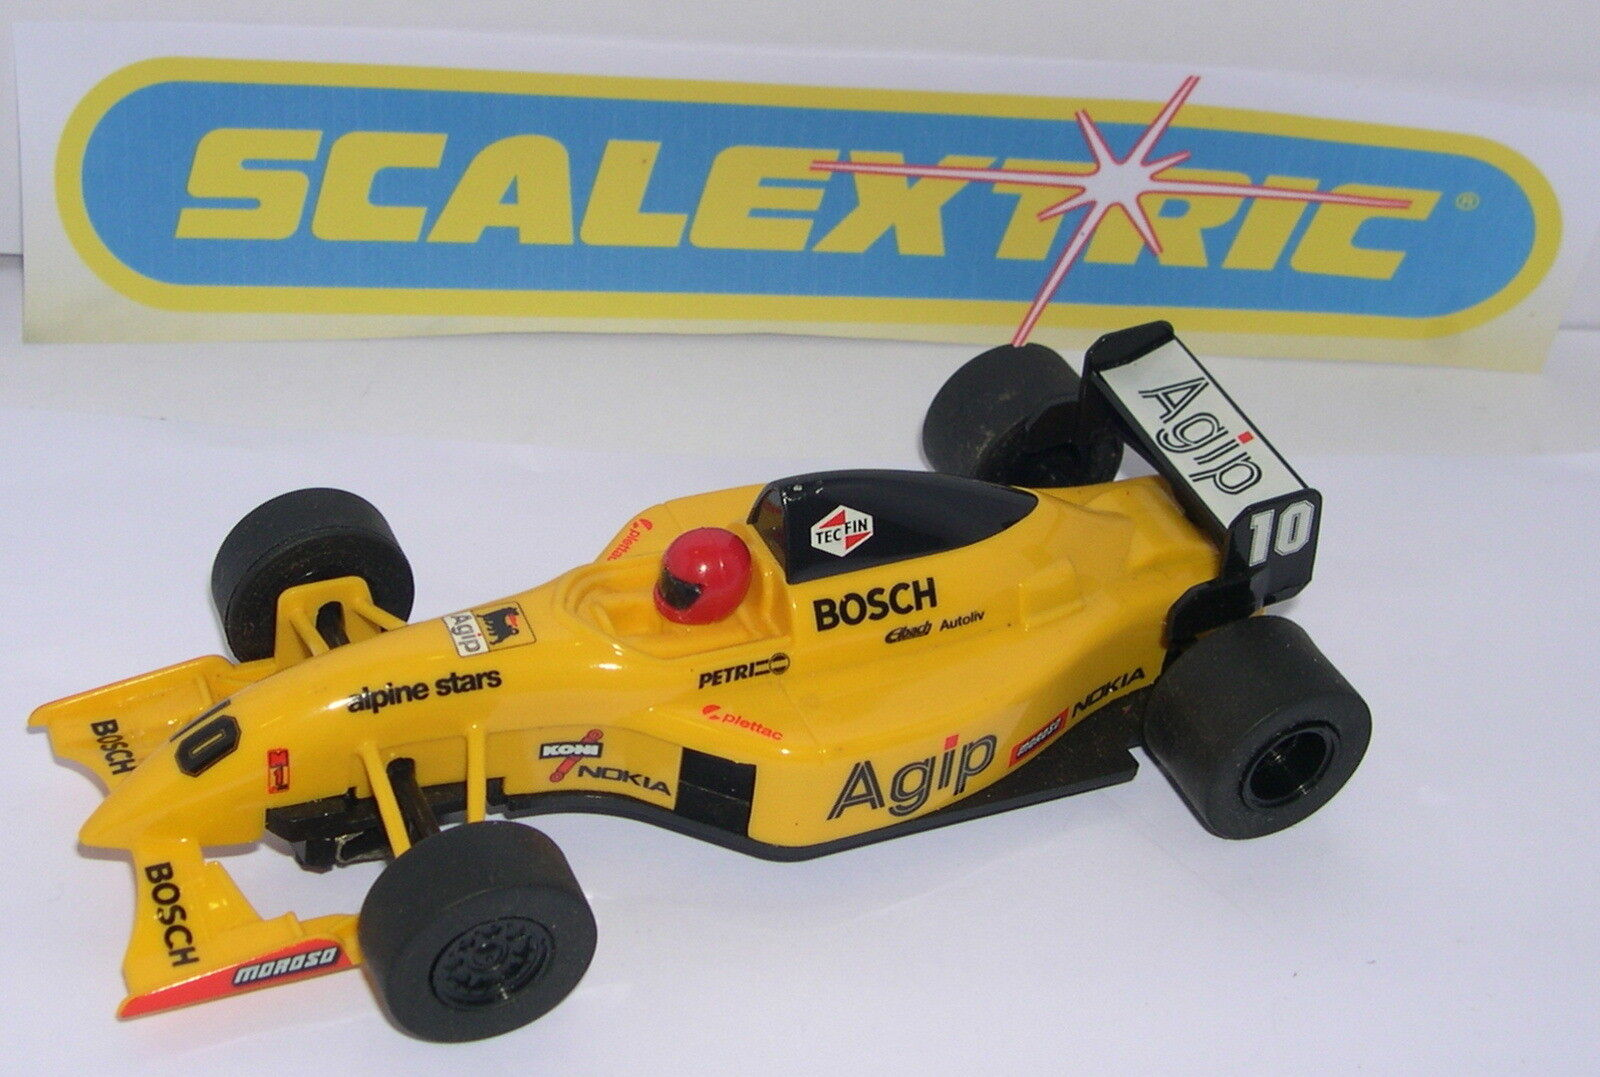 SCALEXTRIC C-2112 TEAM AGIP  10 ONLY SET C-36586.7oz MINT UNBOXED